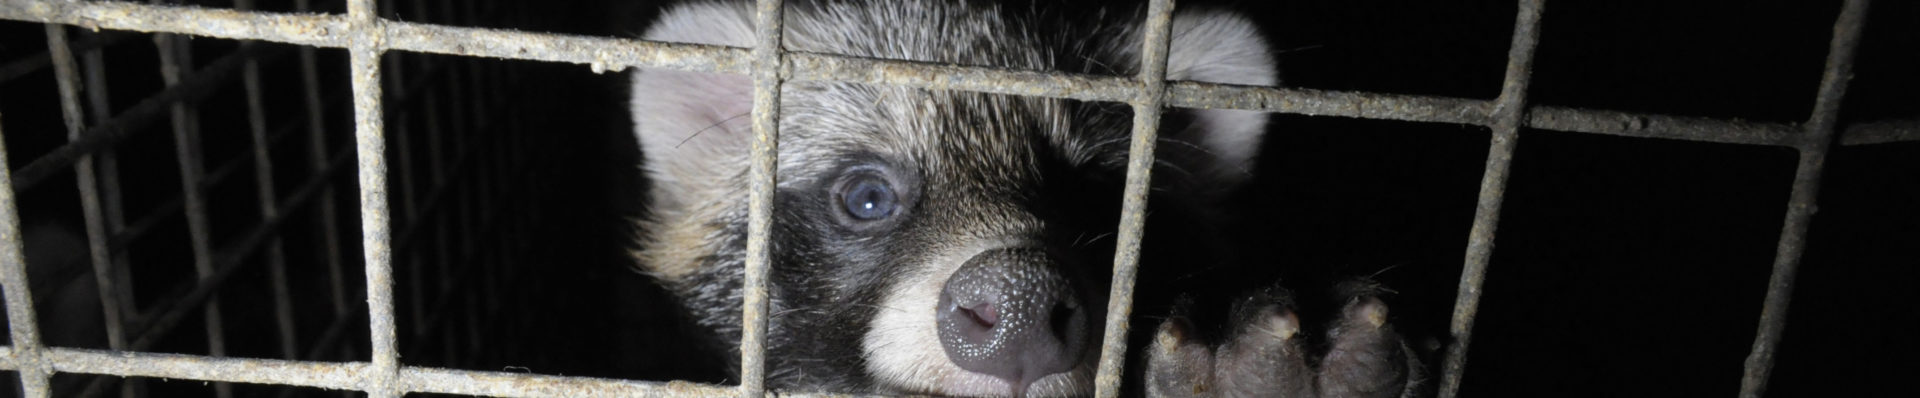 Serbia starts 2019 off right by outlawing fur farms